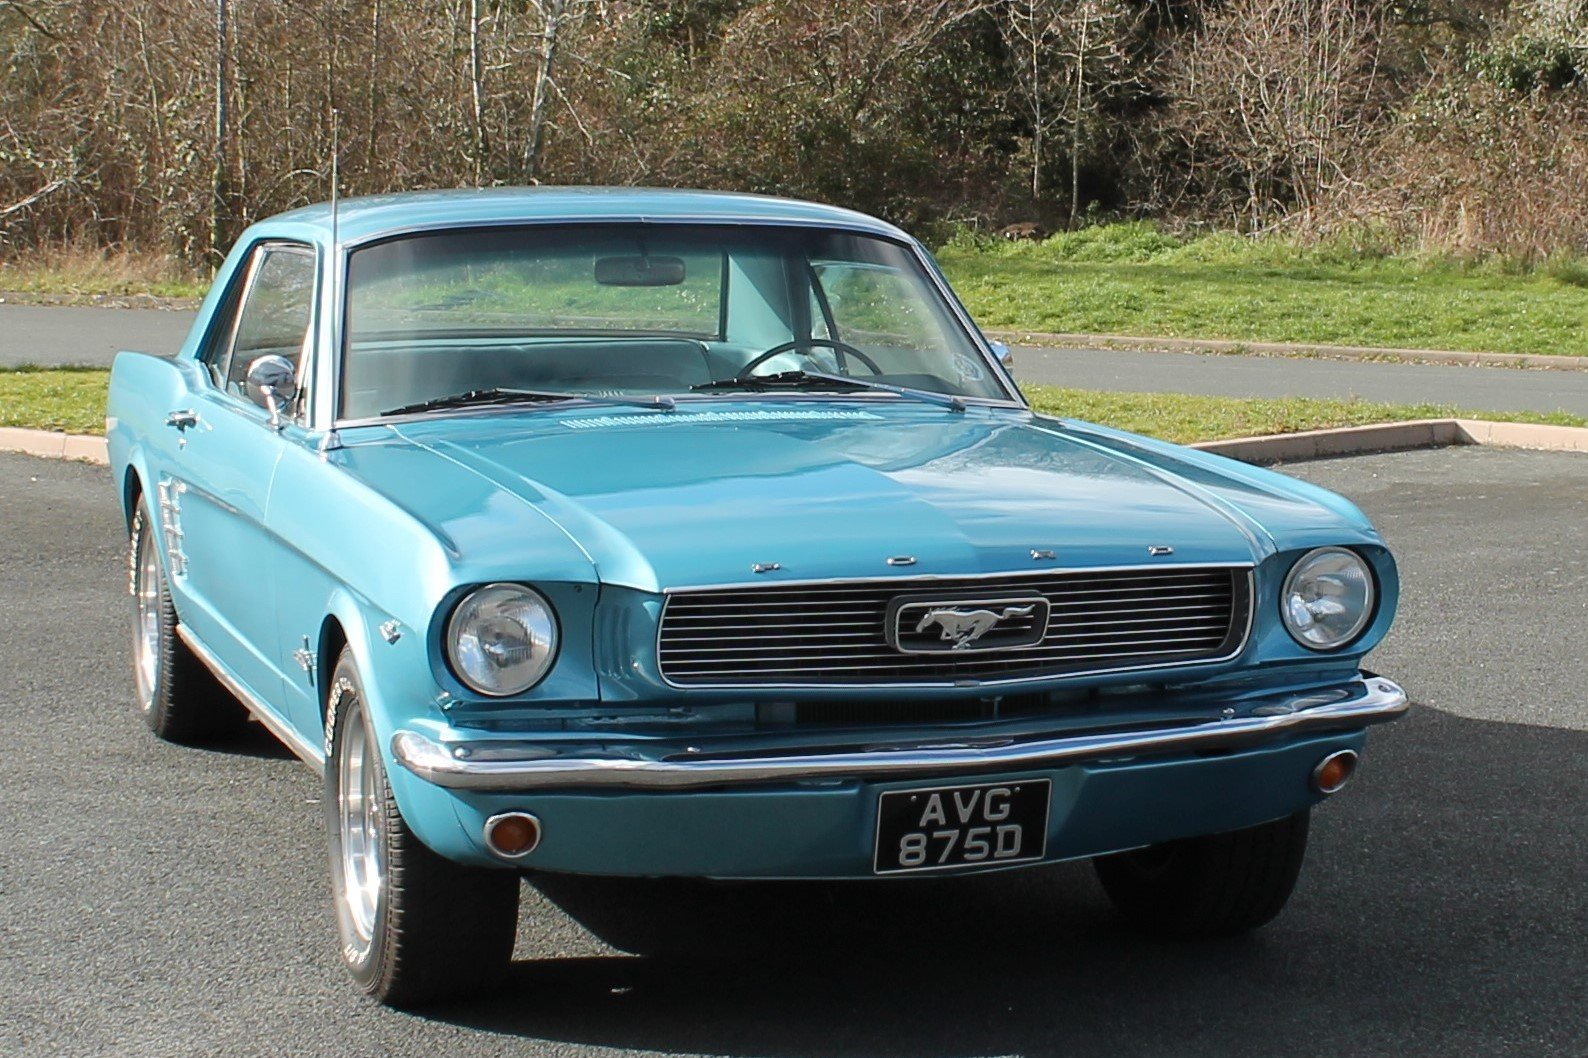 1966 Ford Mustang 289 V8 Automatic Power Steering For Sale (picture 1 of 6)